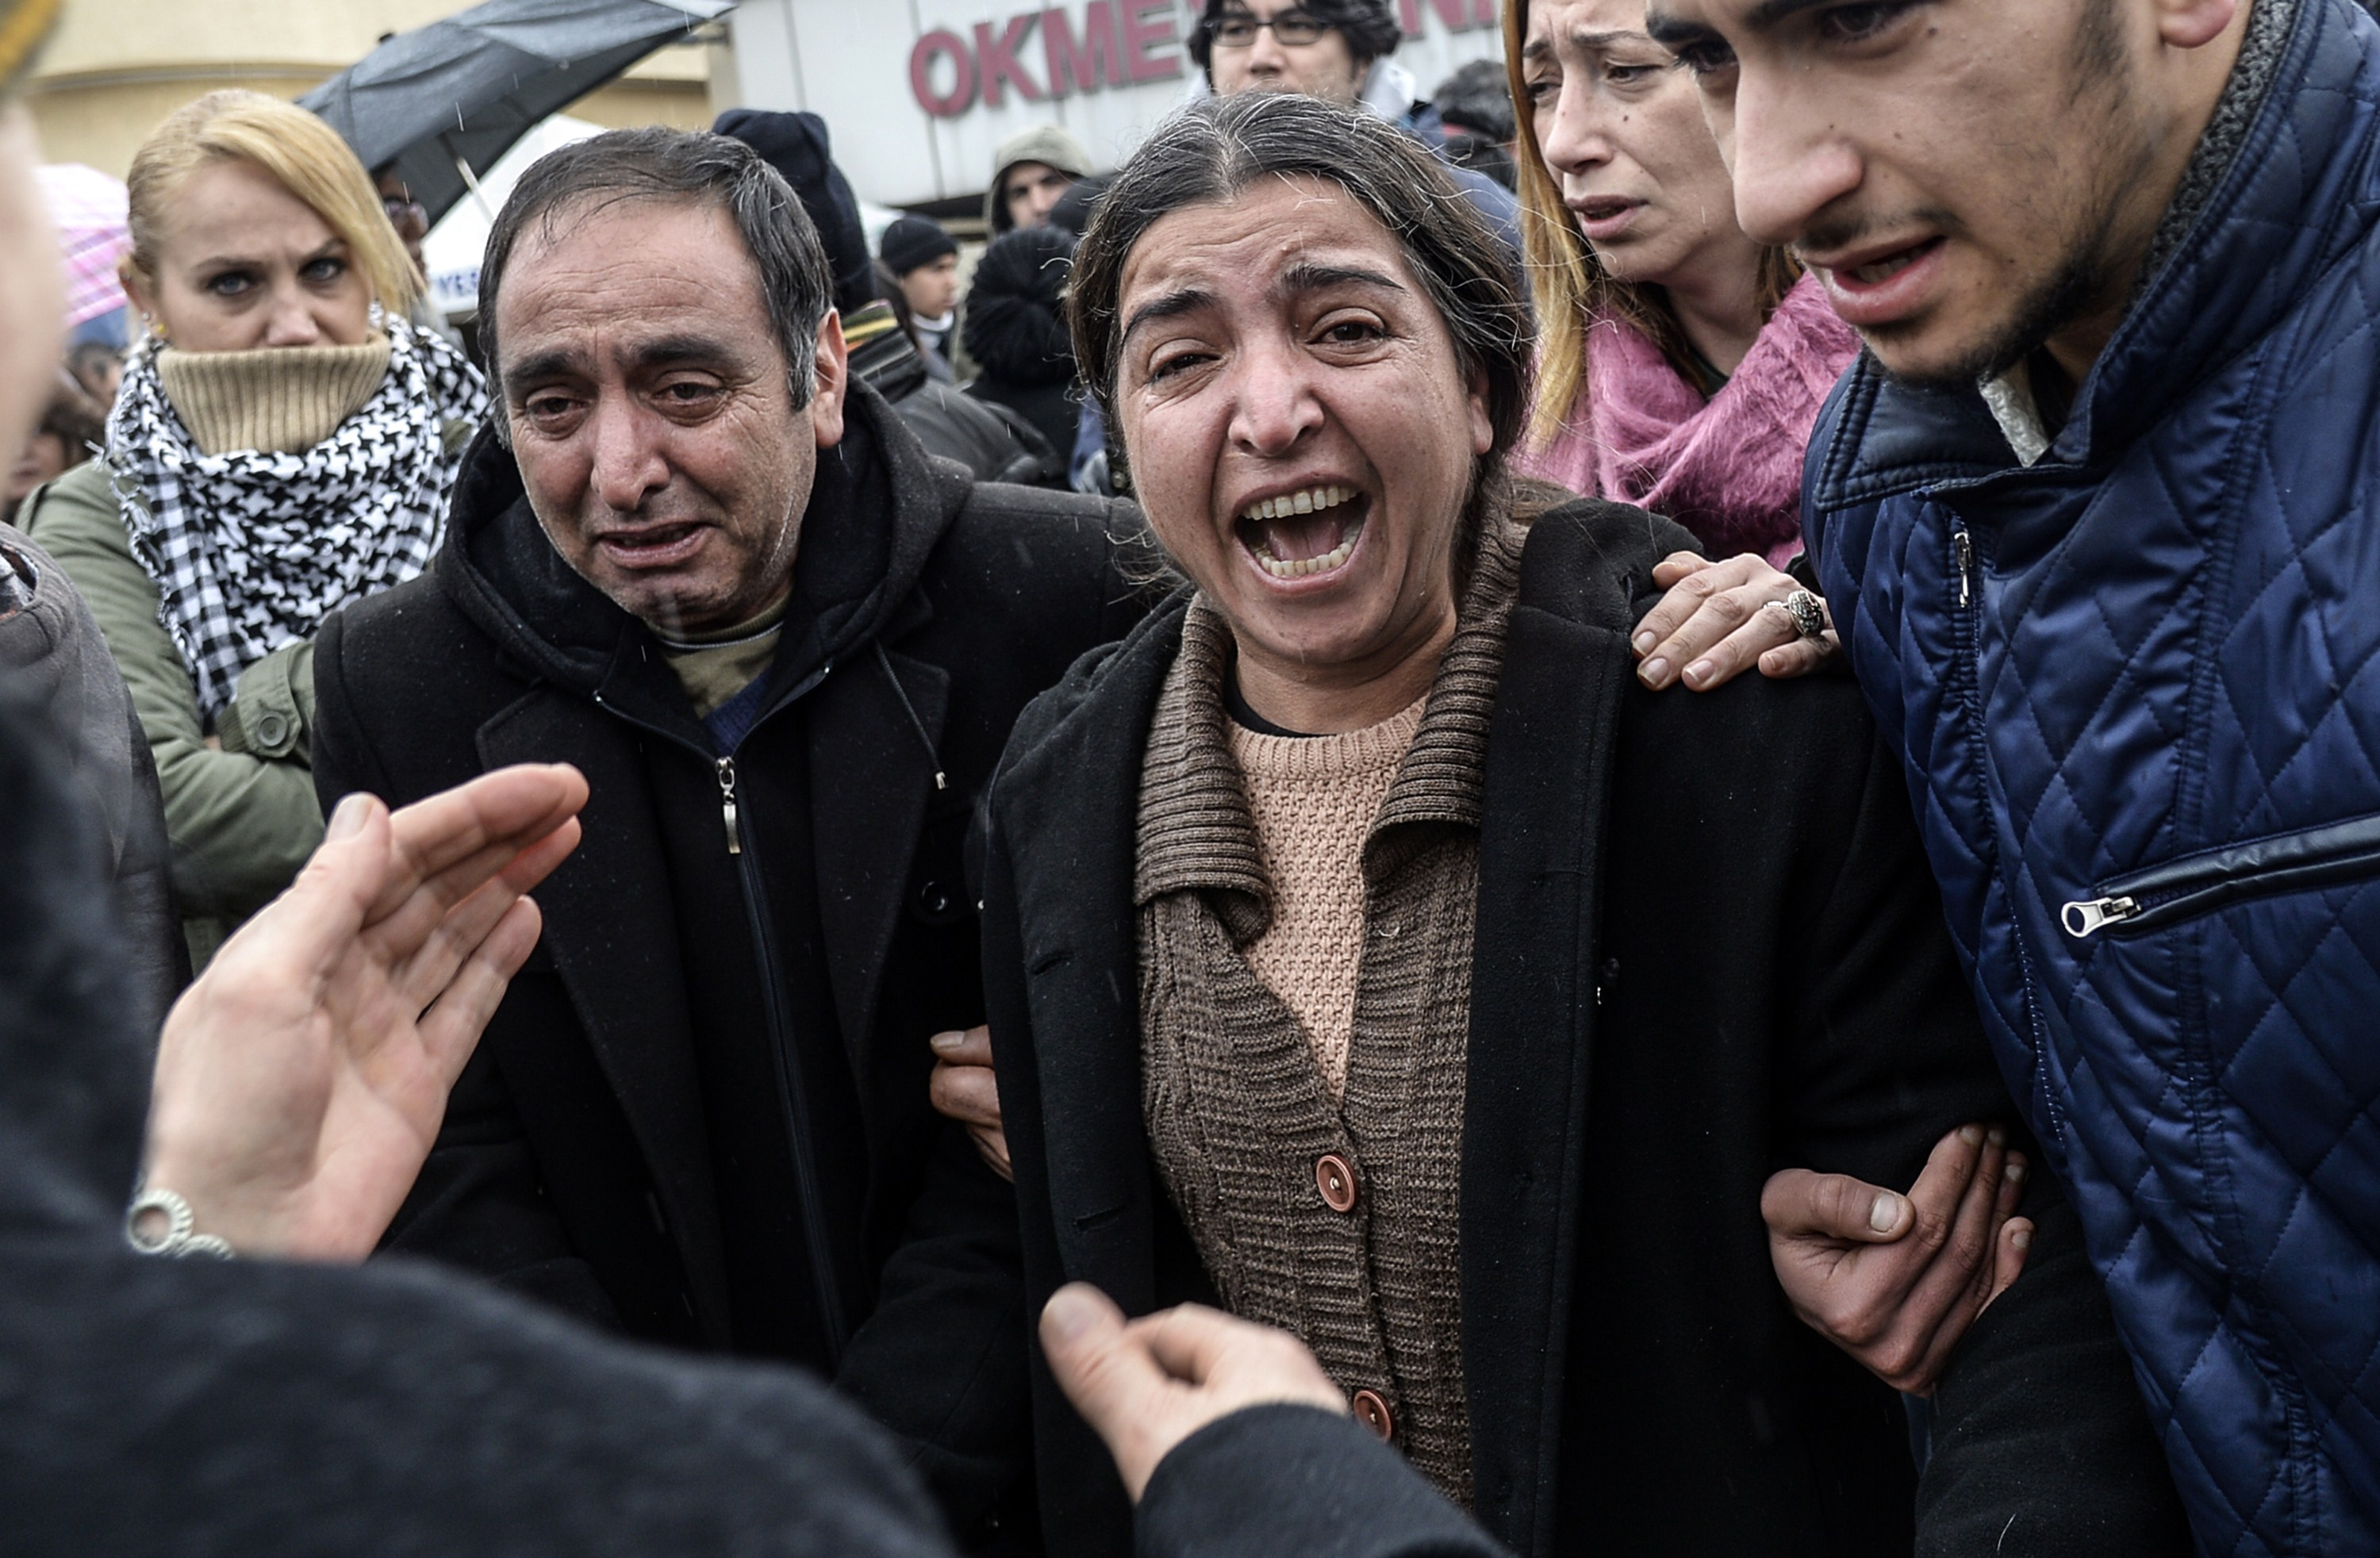 The mother (C) of 15-year-old Berkin Elvan cries after her son died at Okmeydani Hospital in Istanbul on March 11, 2014. Violent protests erupted between Turkish police and hundreds of protesters outside the hospital where the teenager, who had fallen into a coma after being hit by a tear gas canister during mass anti-government protests last year, died.  (AFP PHOTO/BULENT KILIC)